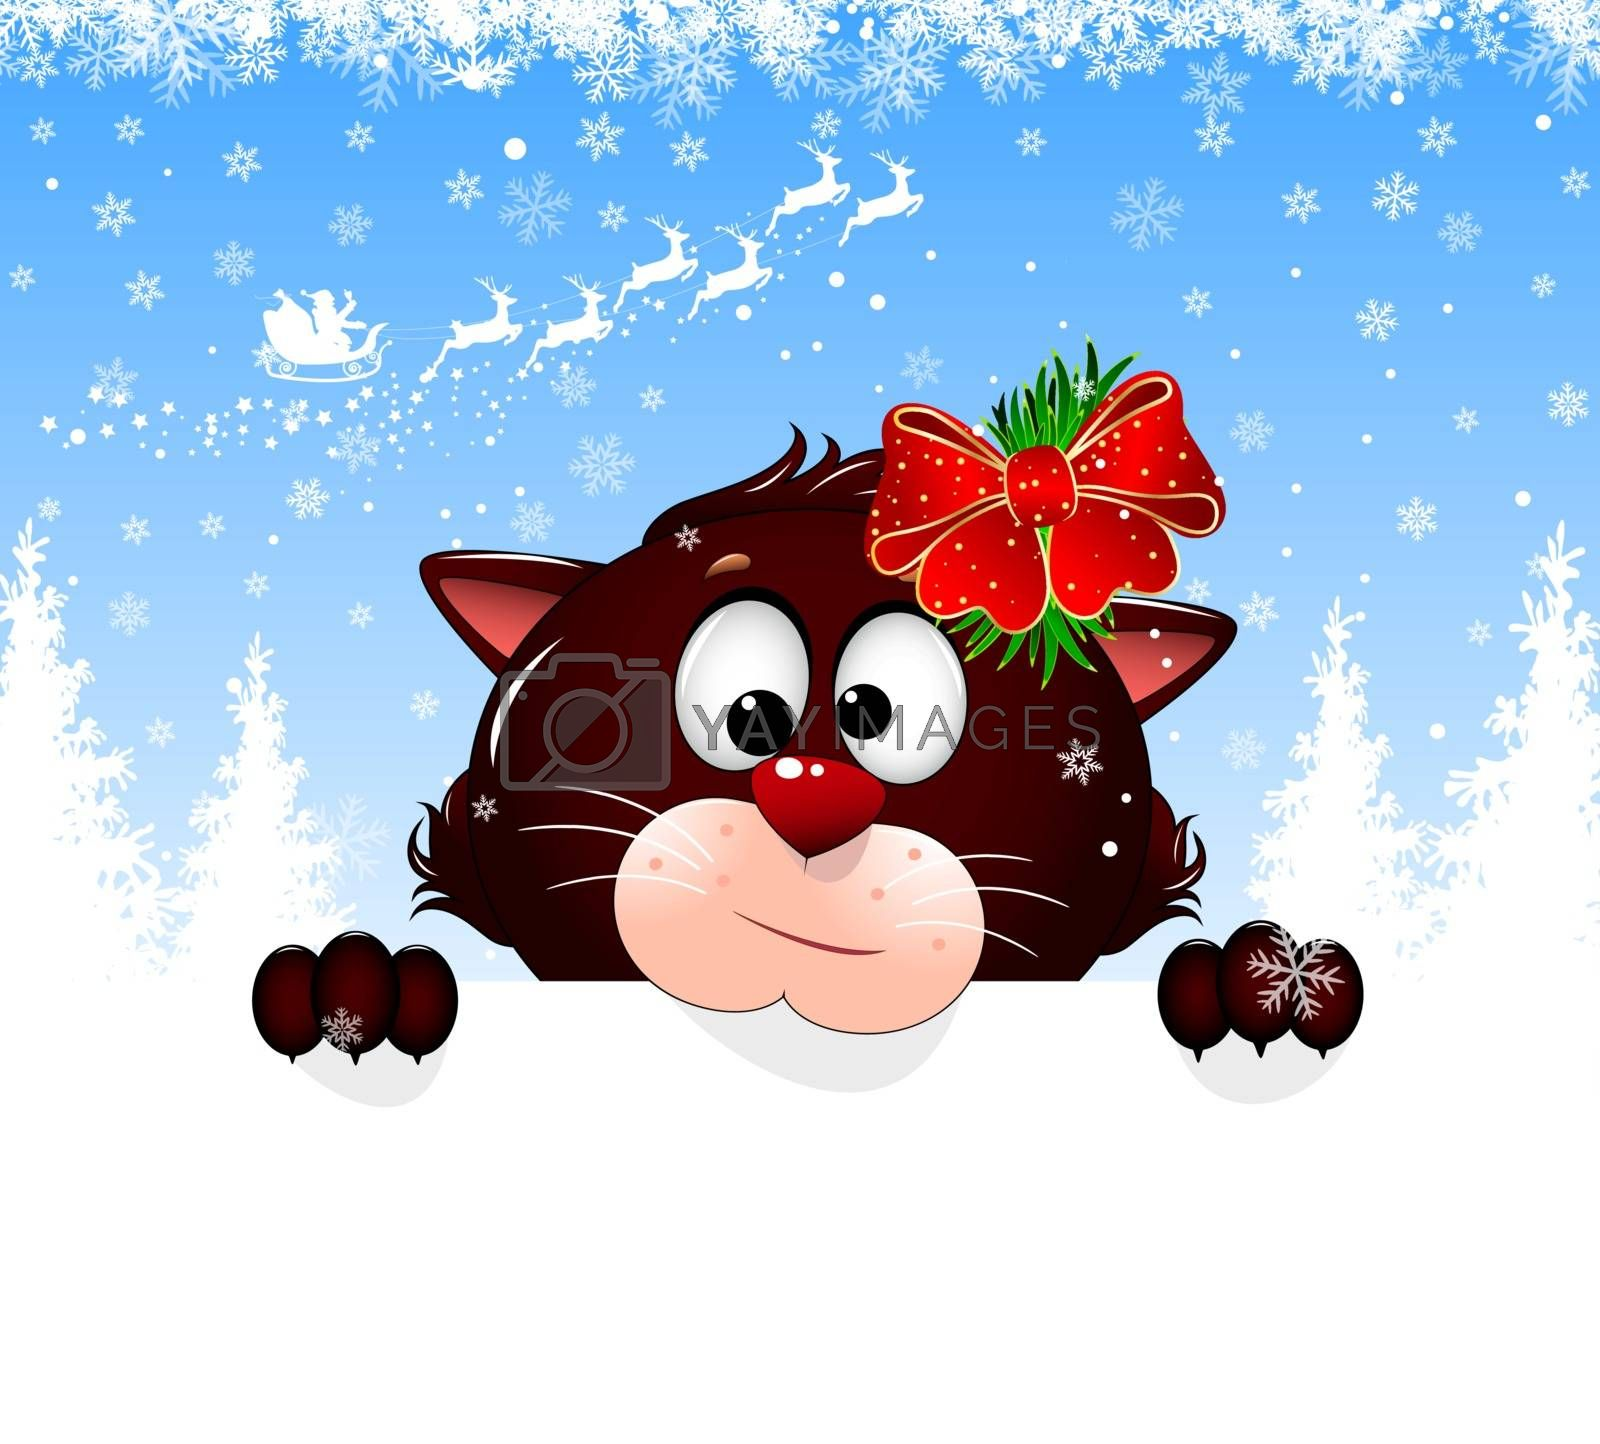 Cartoon cat on a winter background with snowflakes. Feline portrait close-up. Cat face, snowflakes, Santa Claus on deers, forest. Greeting card Merry Christmas and Happy New Year.